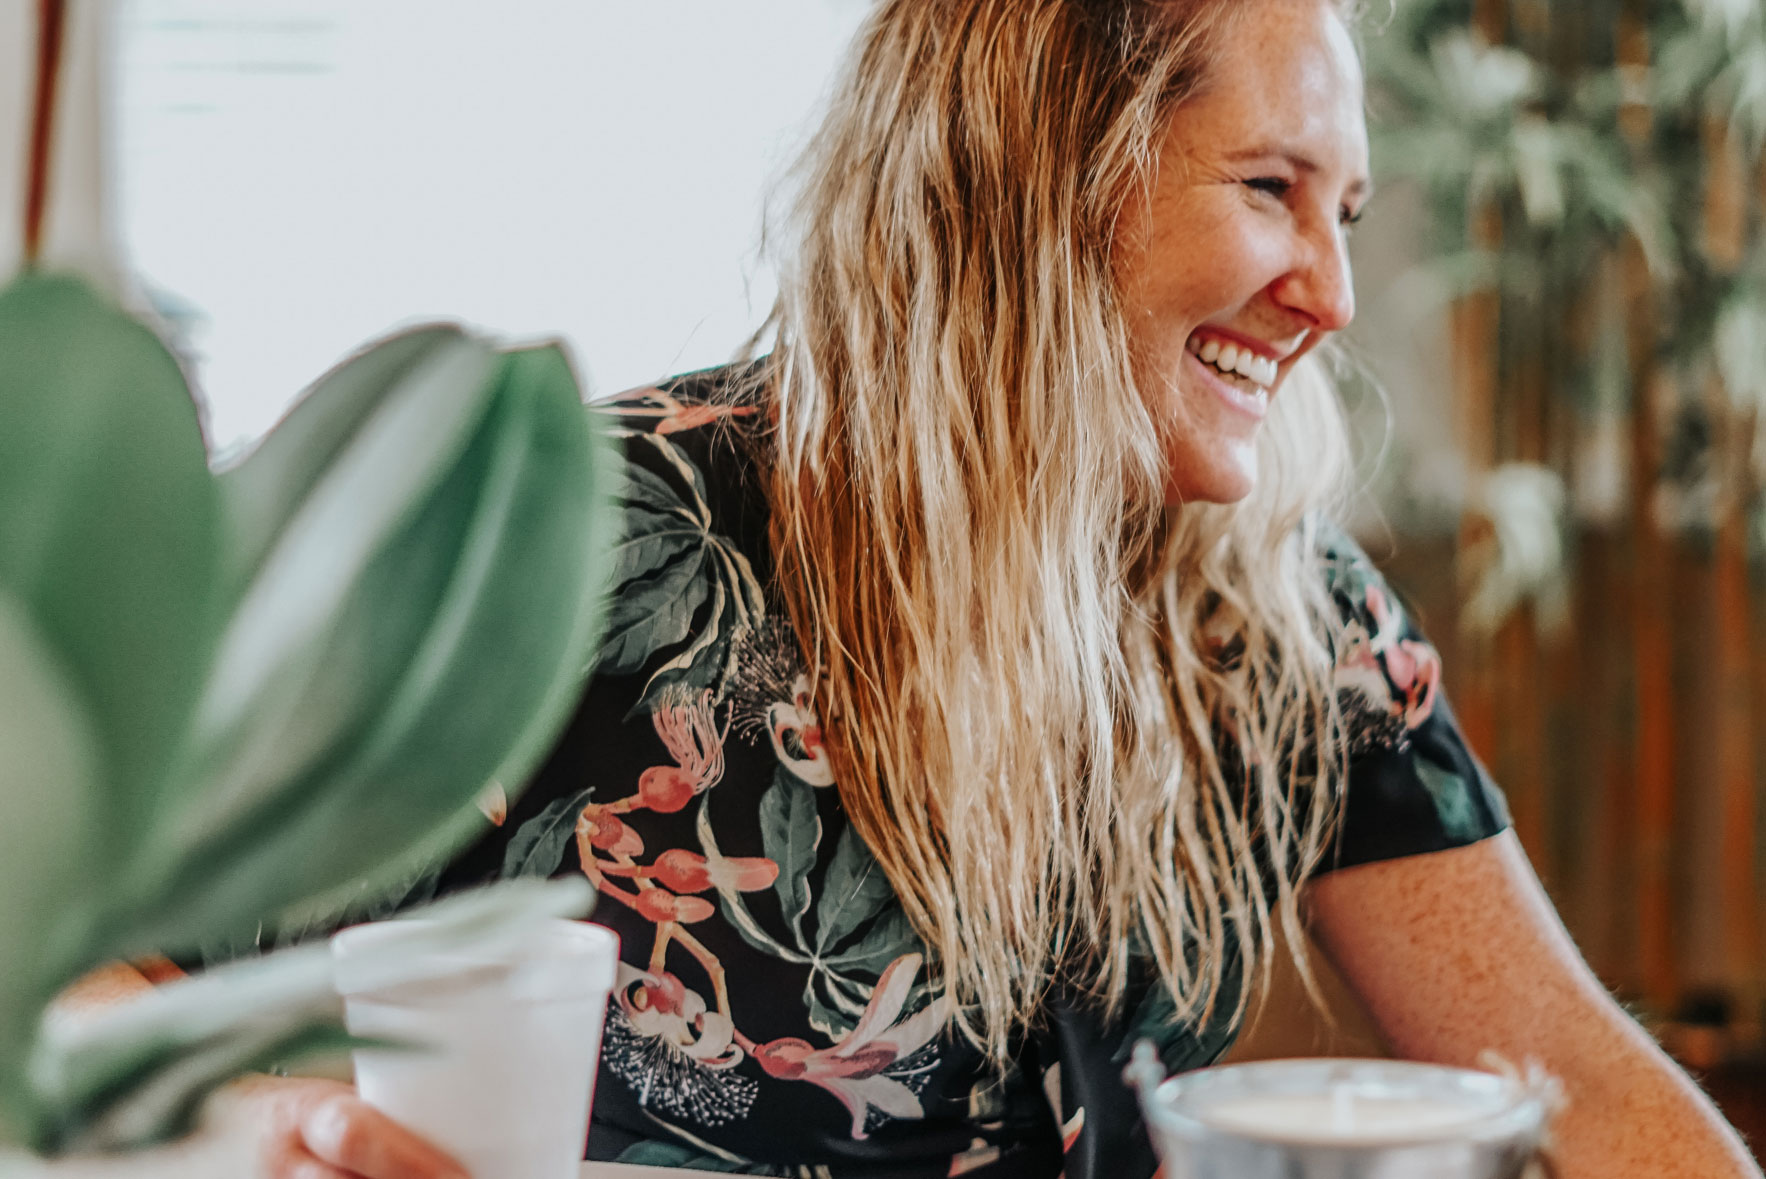 Engaging Culture - Australians spend more time at work than at home and at PKL Recruitment we recognise that everyone has different priorities. From flexible work arrangements, lunchtime gym sessions, daily breakfast or just needing a day off to simply recharge - we want you to thrive at work.